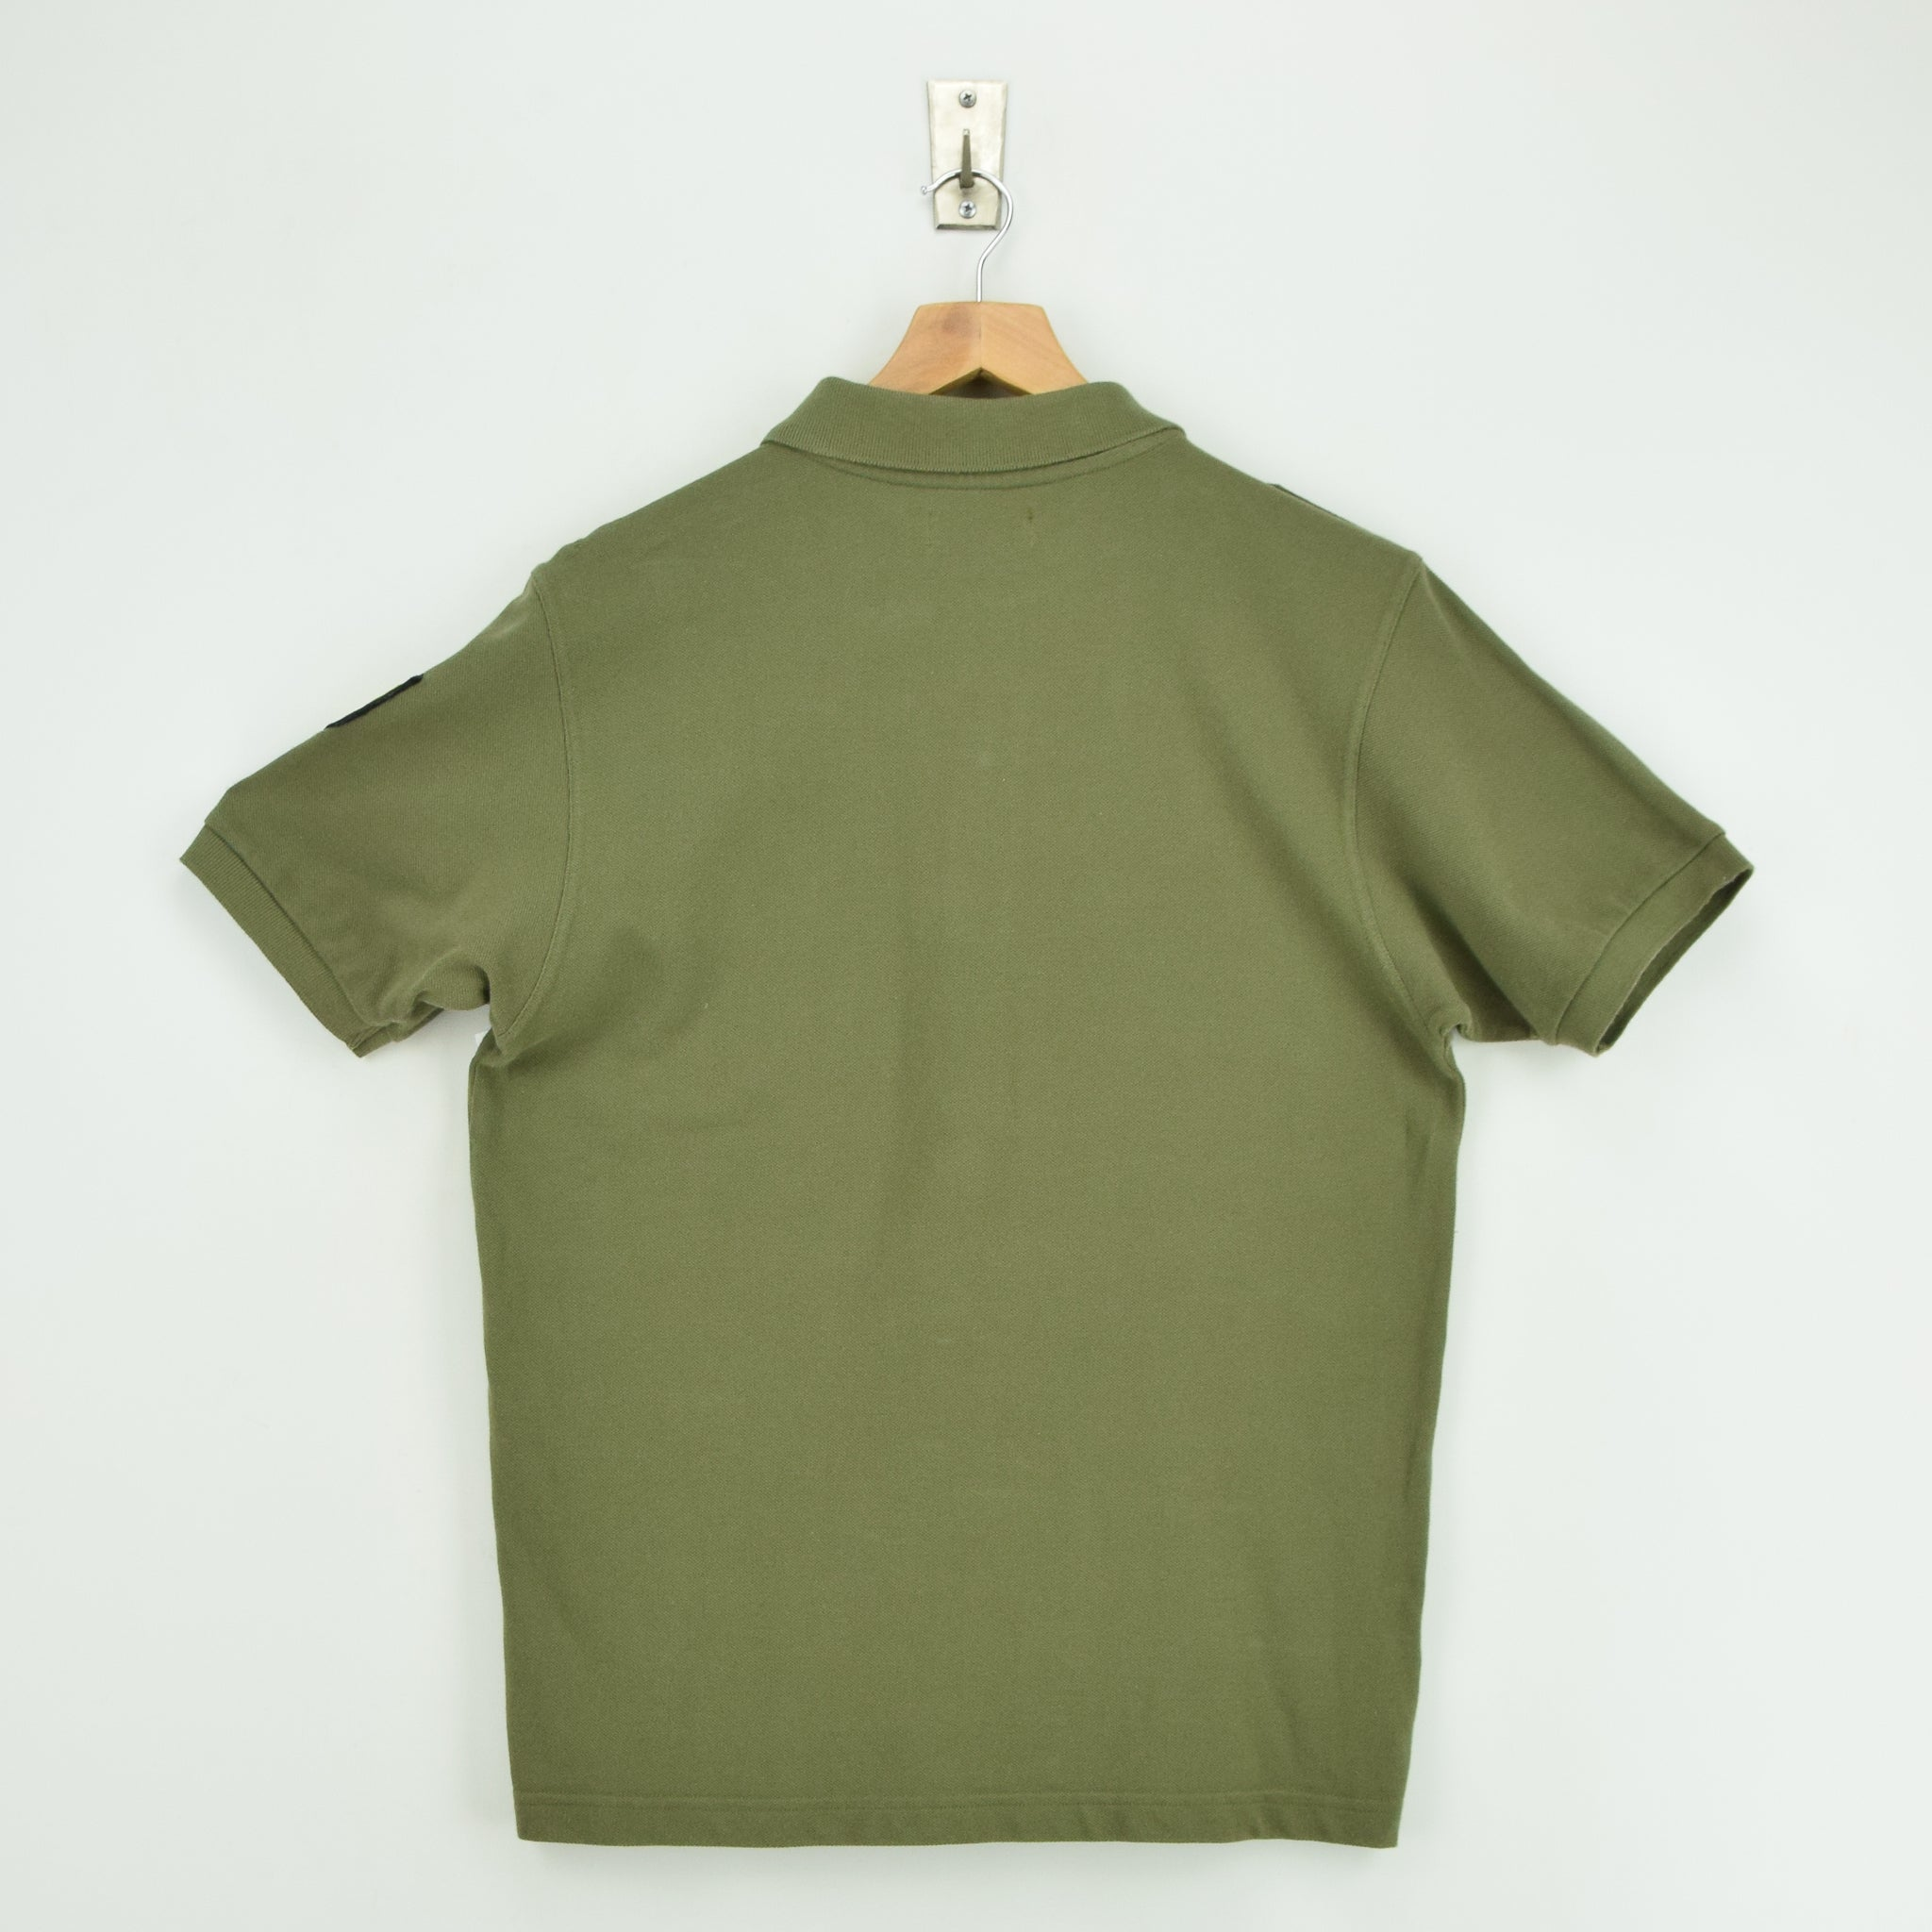 Vintage Fred Perry Green Short Sleeved Military Style Polo Shirt M back